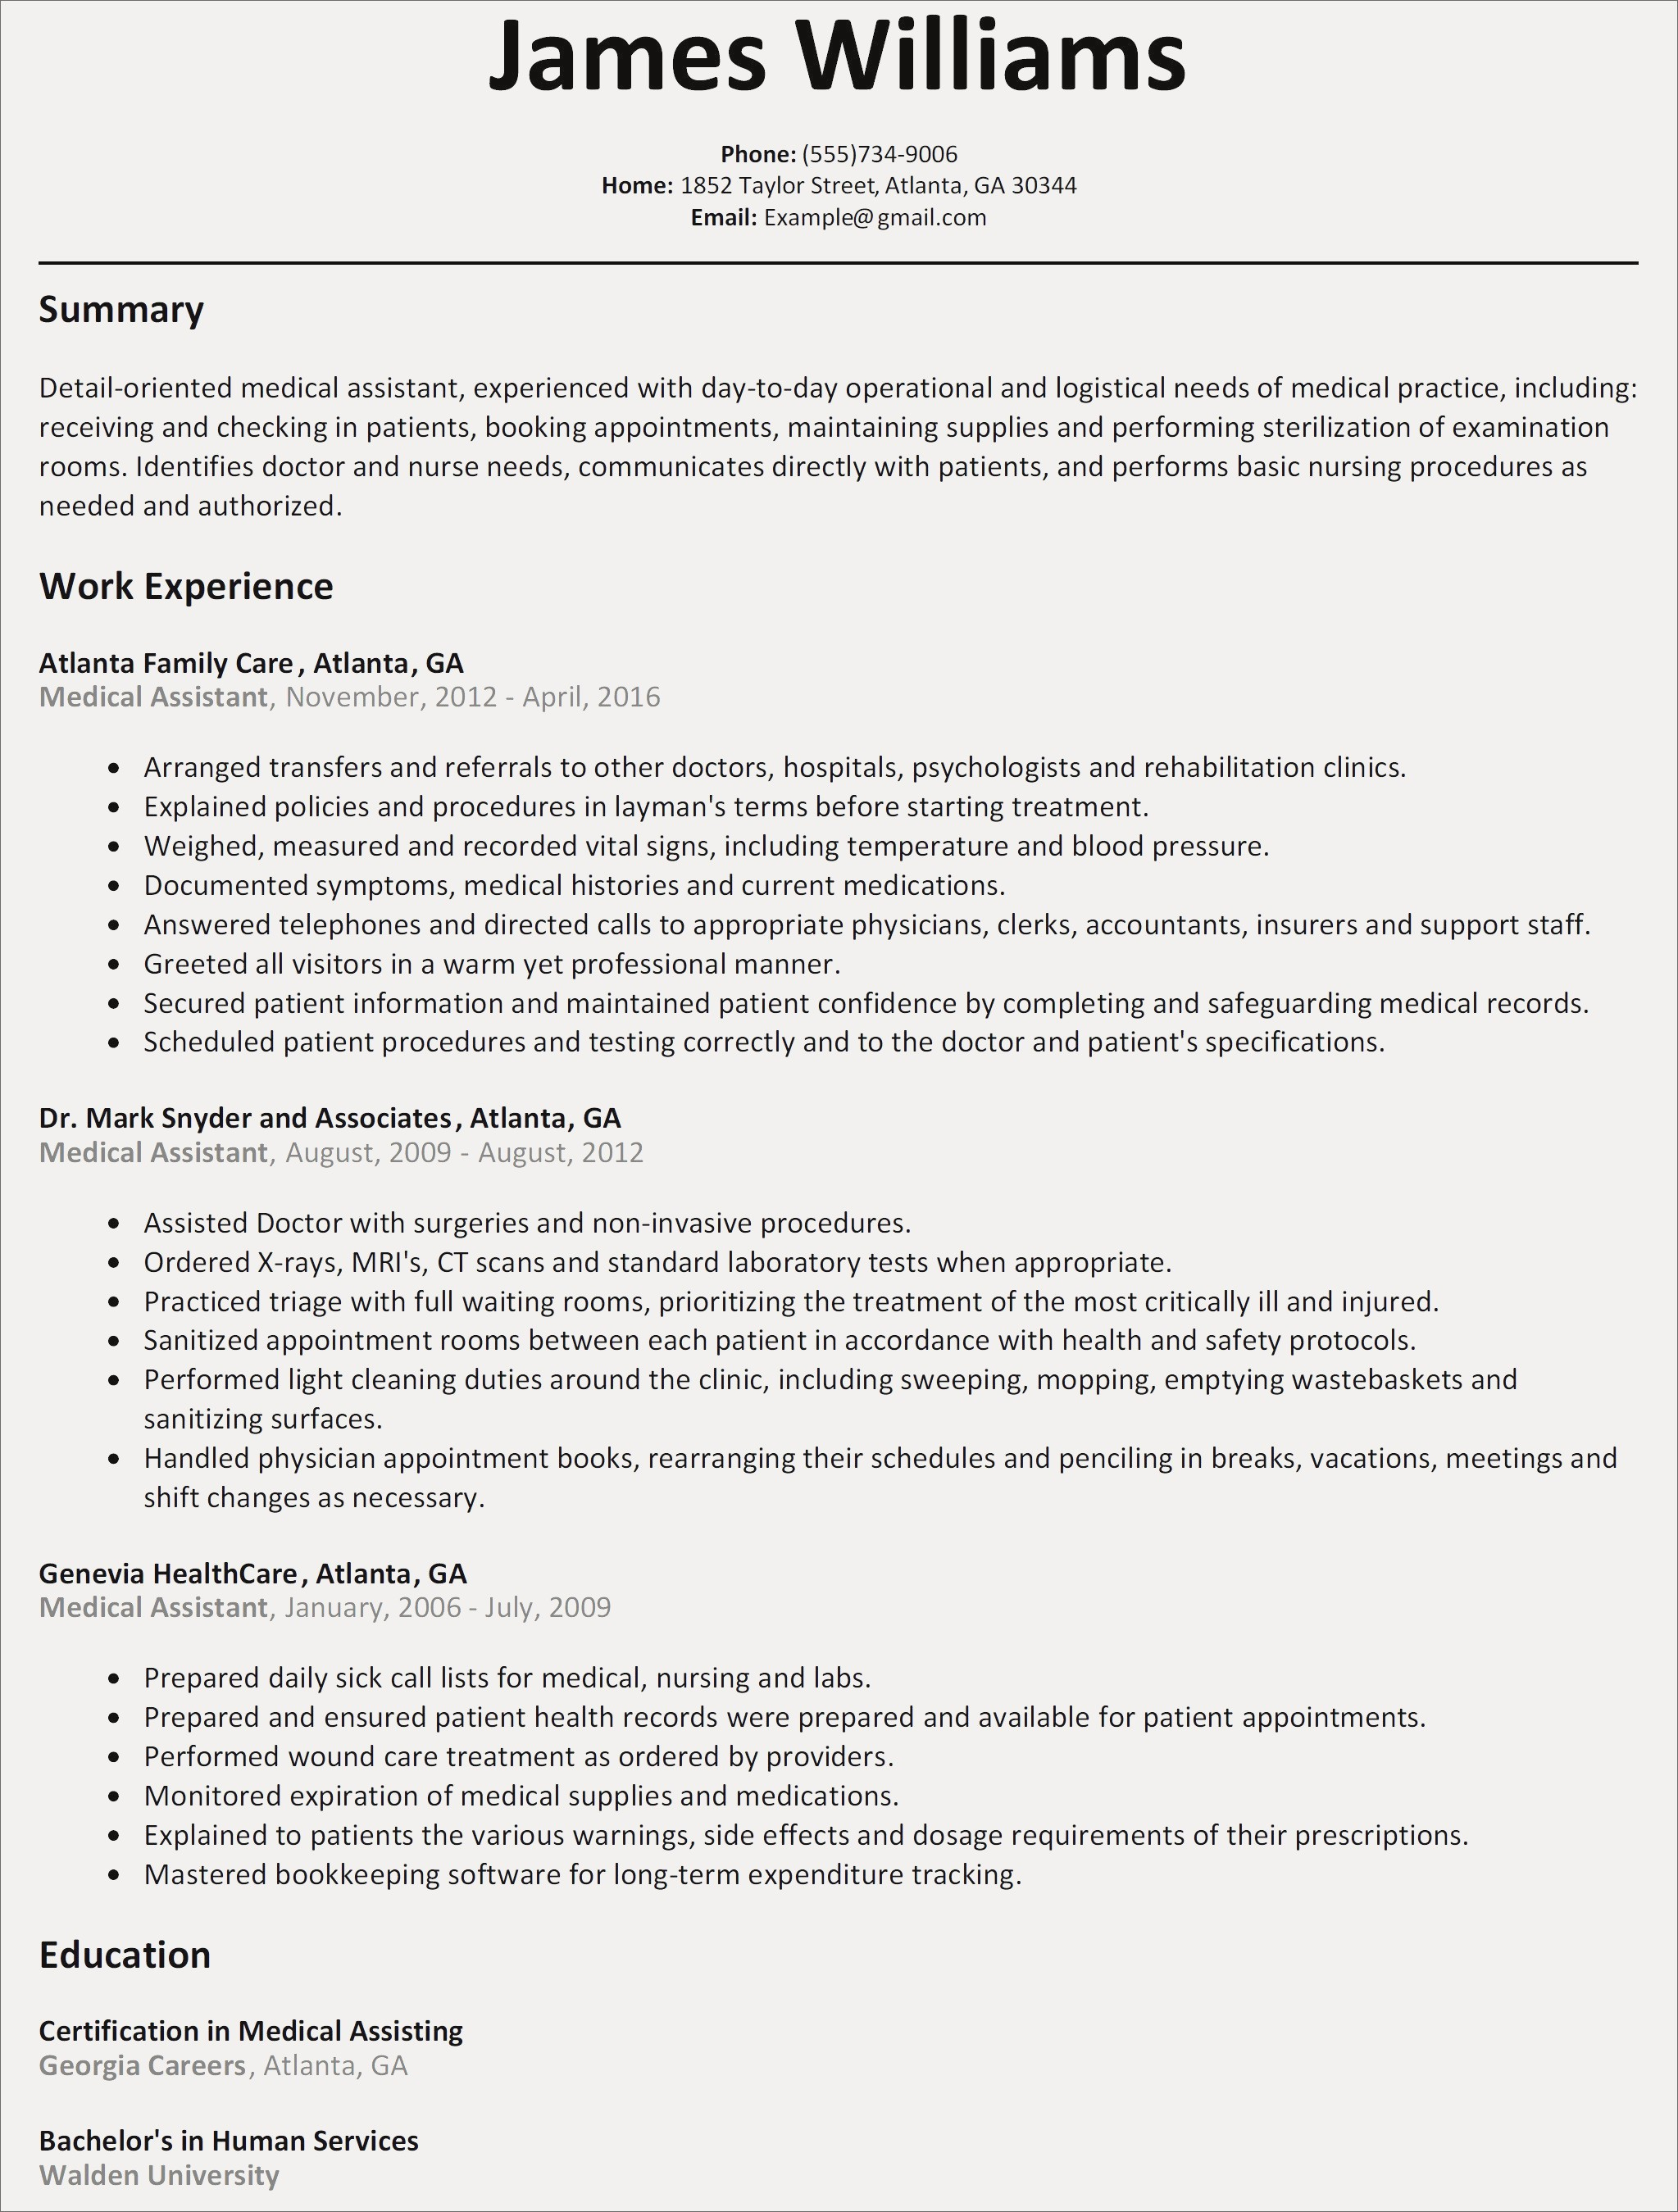 Teacher Resume Template Word - Microsoft Word Template for Resume Save Free Resume Template for